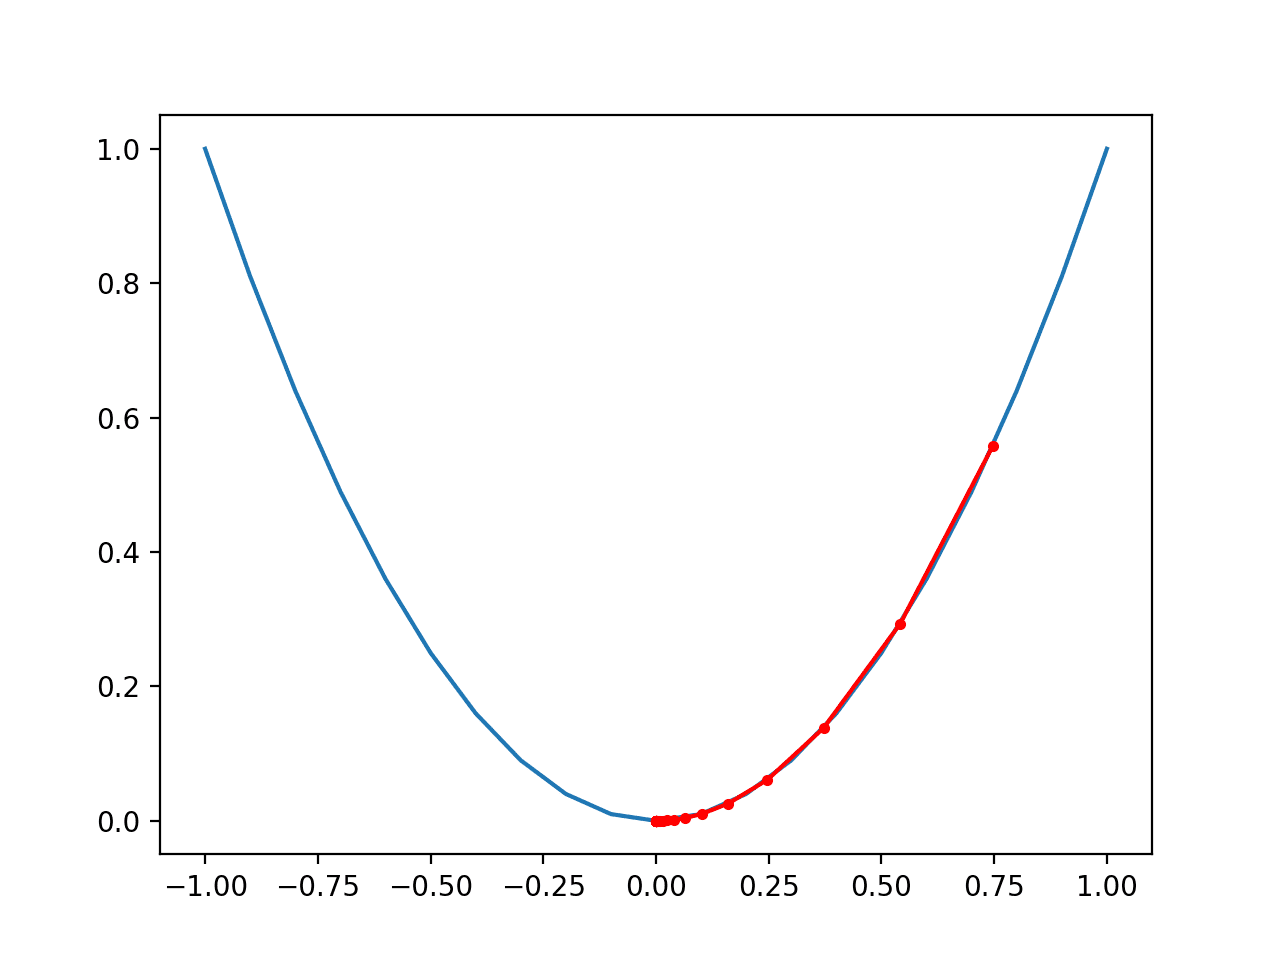 Plot of the Progress of Gradient Descent With Momentum on a One Dimensional Objective Function